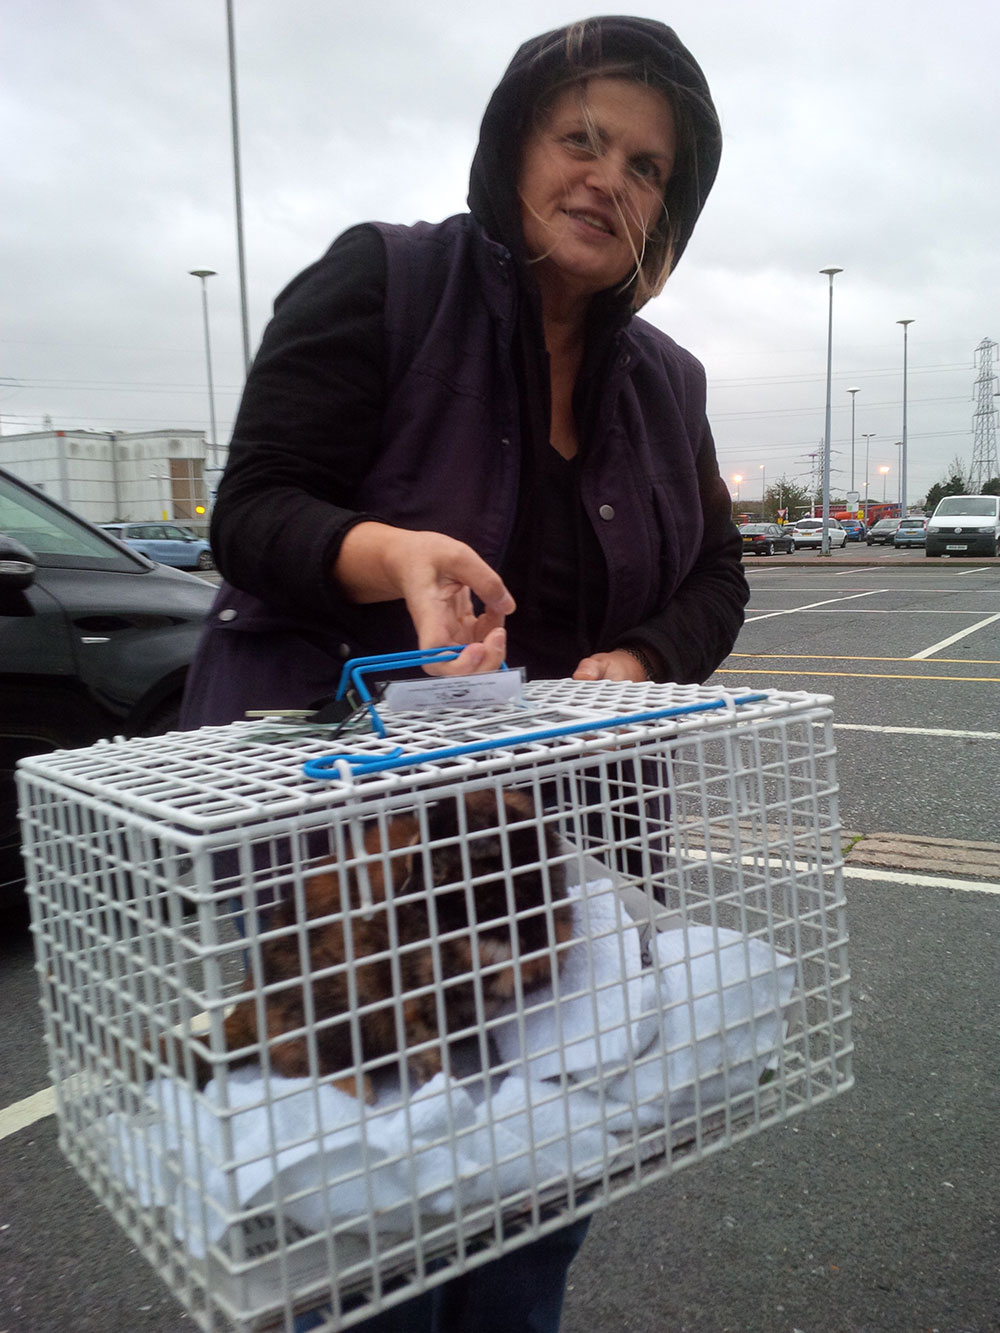 We met Liana at Thurrock Services, who was very excited to receive Phantom